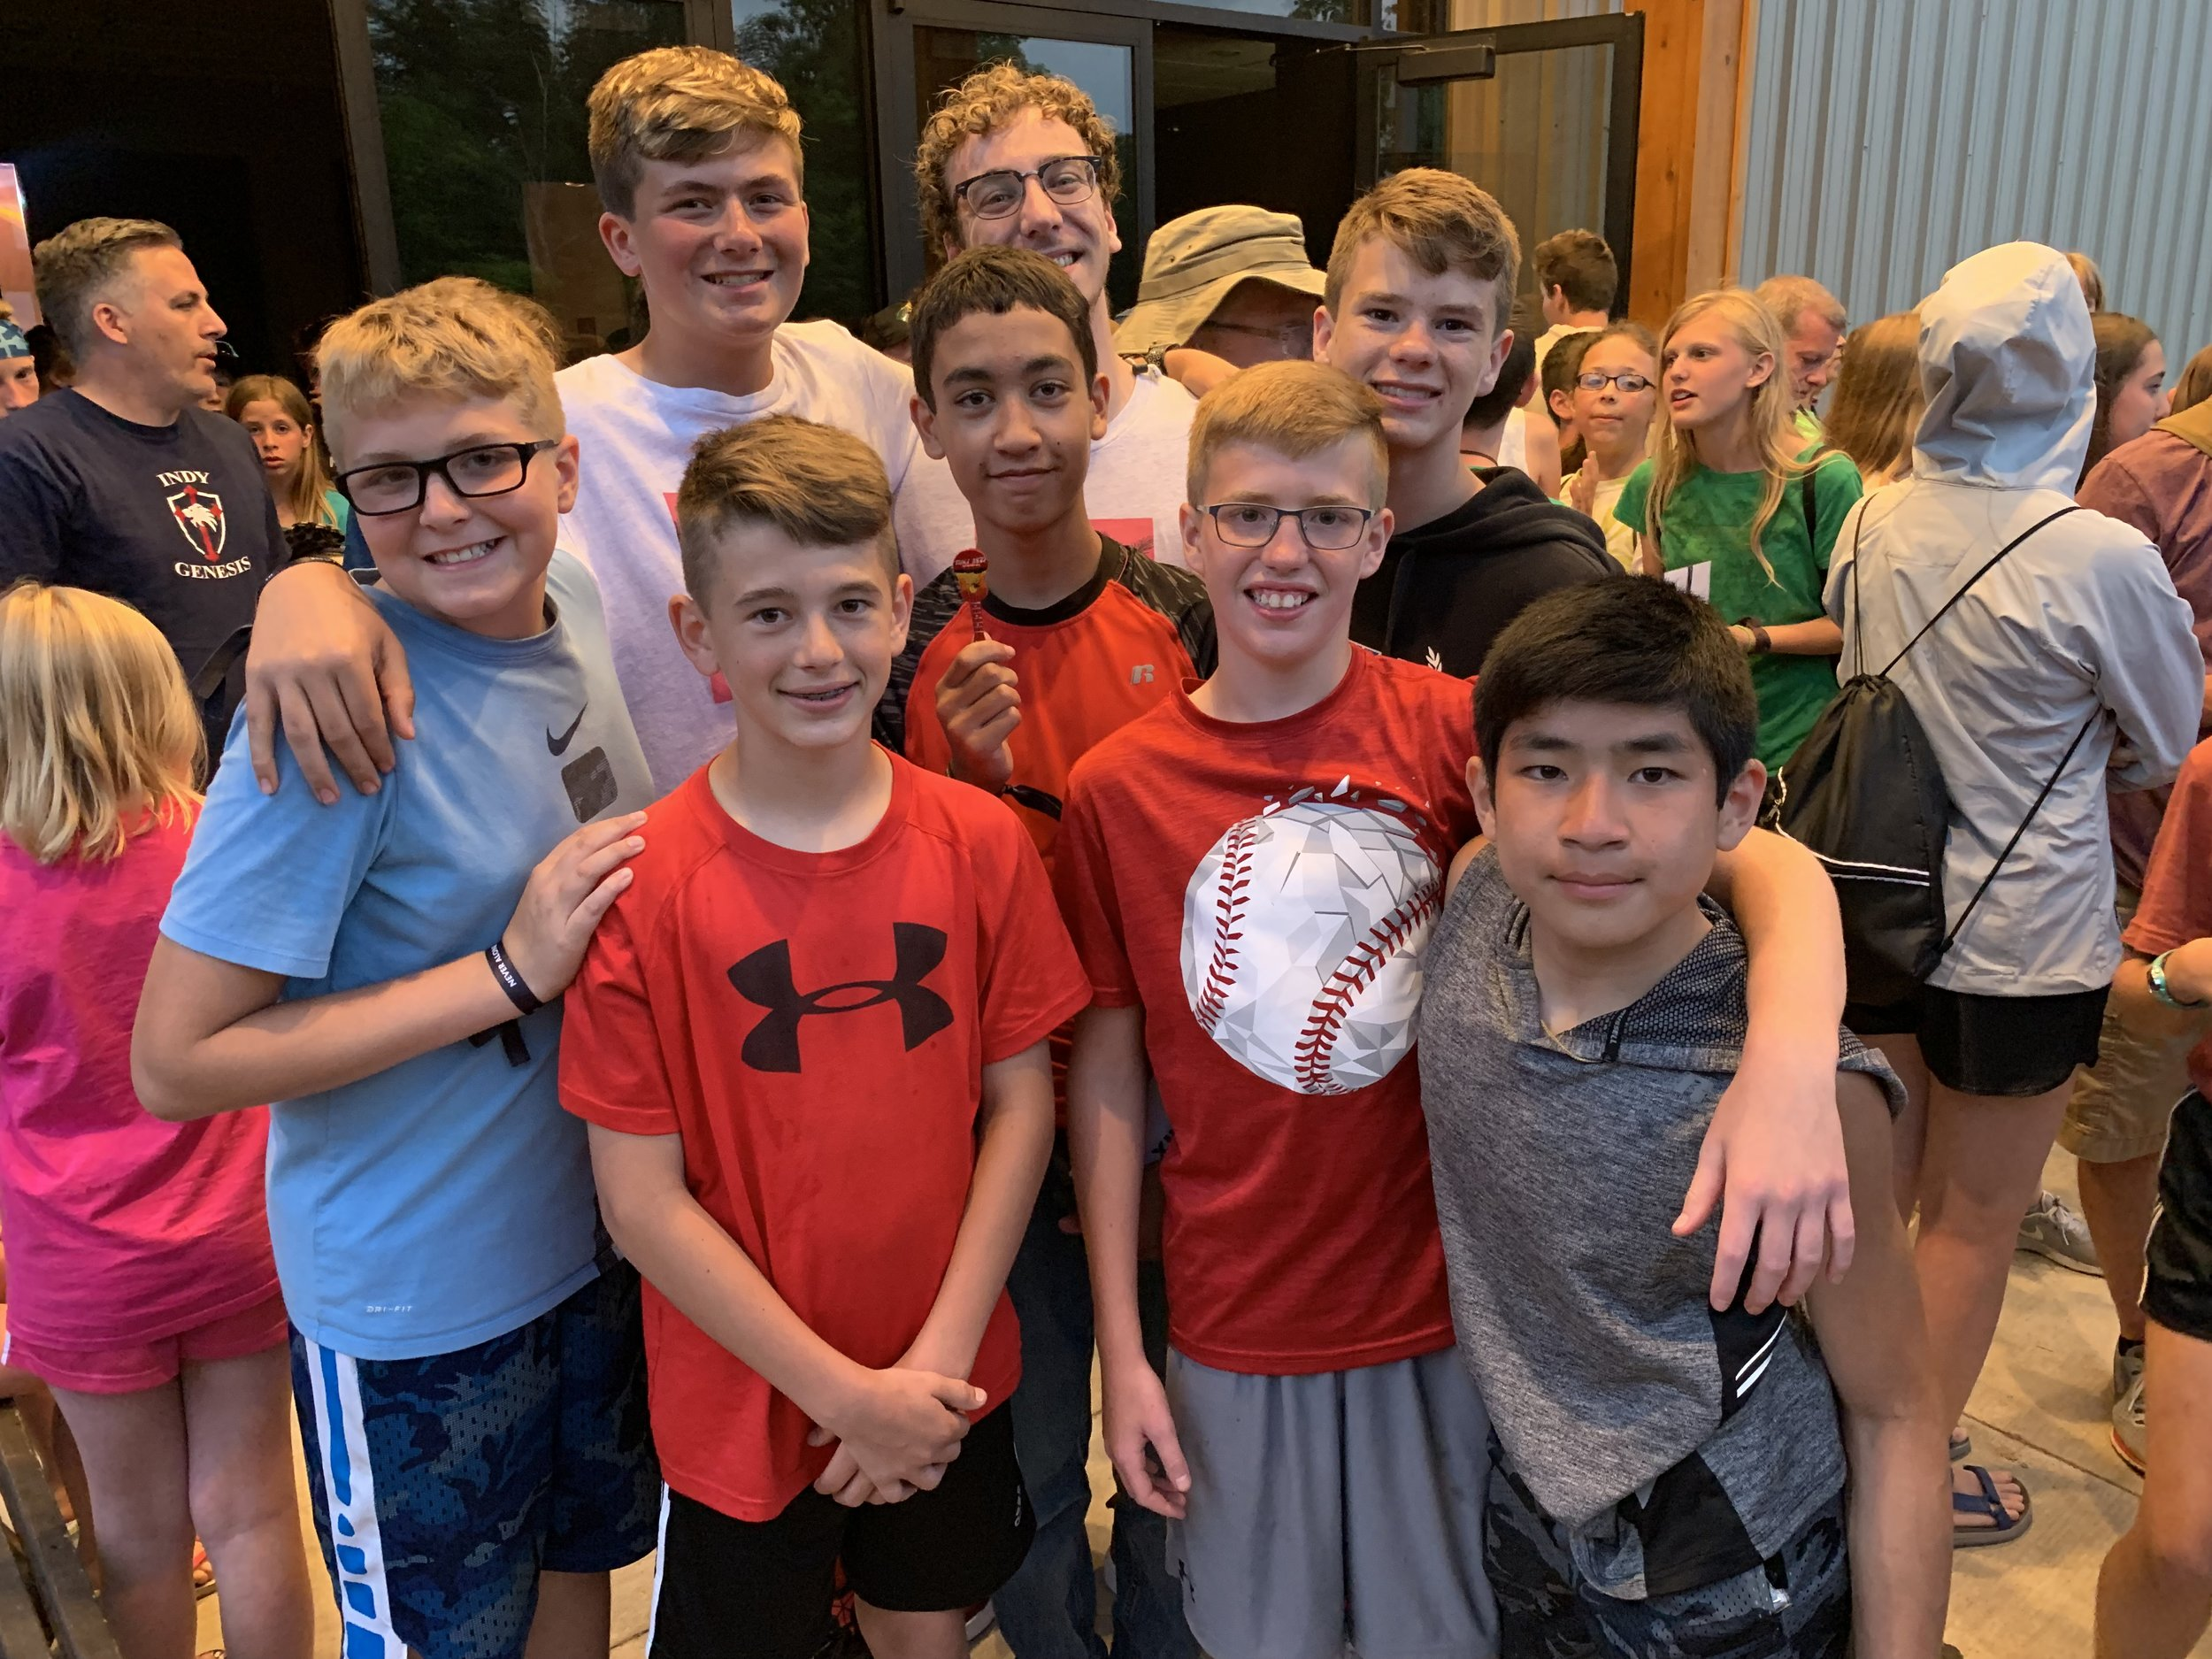 MIDDLE SCHOOL - Our 5th-8th grade ministry is high-energy, relational and tailored for students who are transitioning from childhood to adolescence. The Middle School Ministry meets at 10:45 am on Sunday mornings in our middle school environment called The Block.